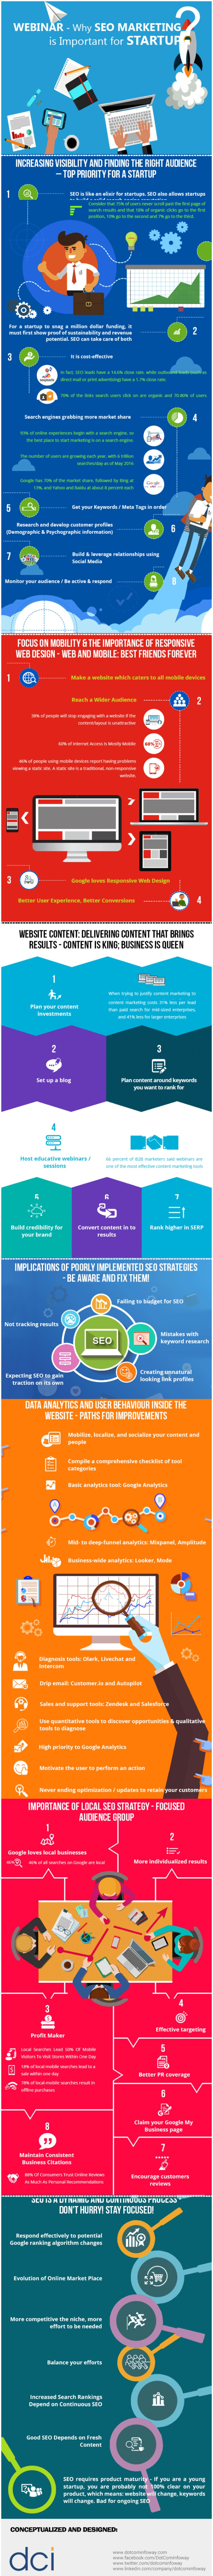 Importance of SEO Marketing for Startups - Visual Contenting | The MarTech Digest | Scoop.it